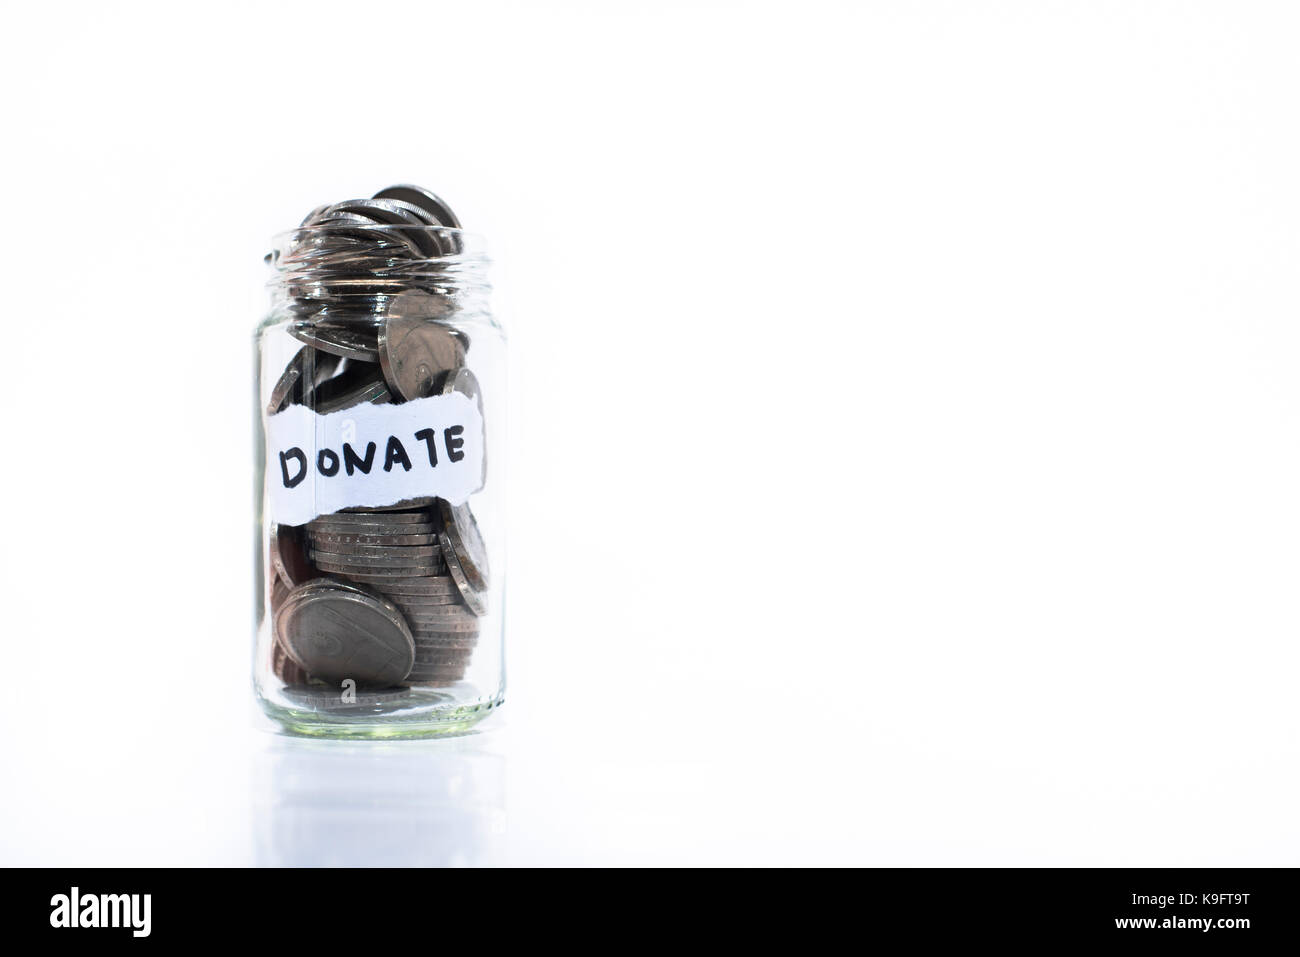 Coins in glass jar with a note written ' DONATE '. Isolated on a white background. Saving money to help - Stock Image